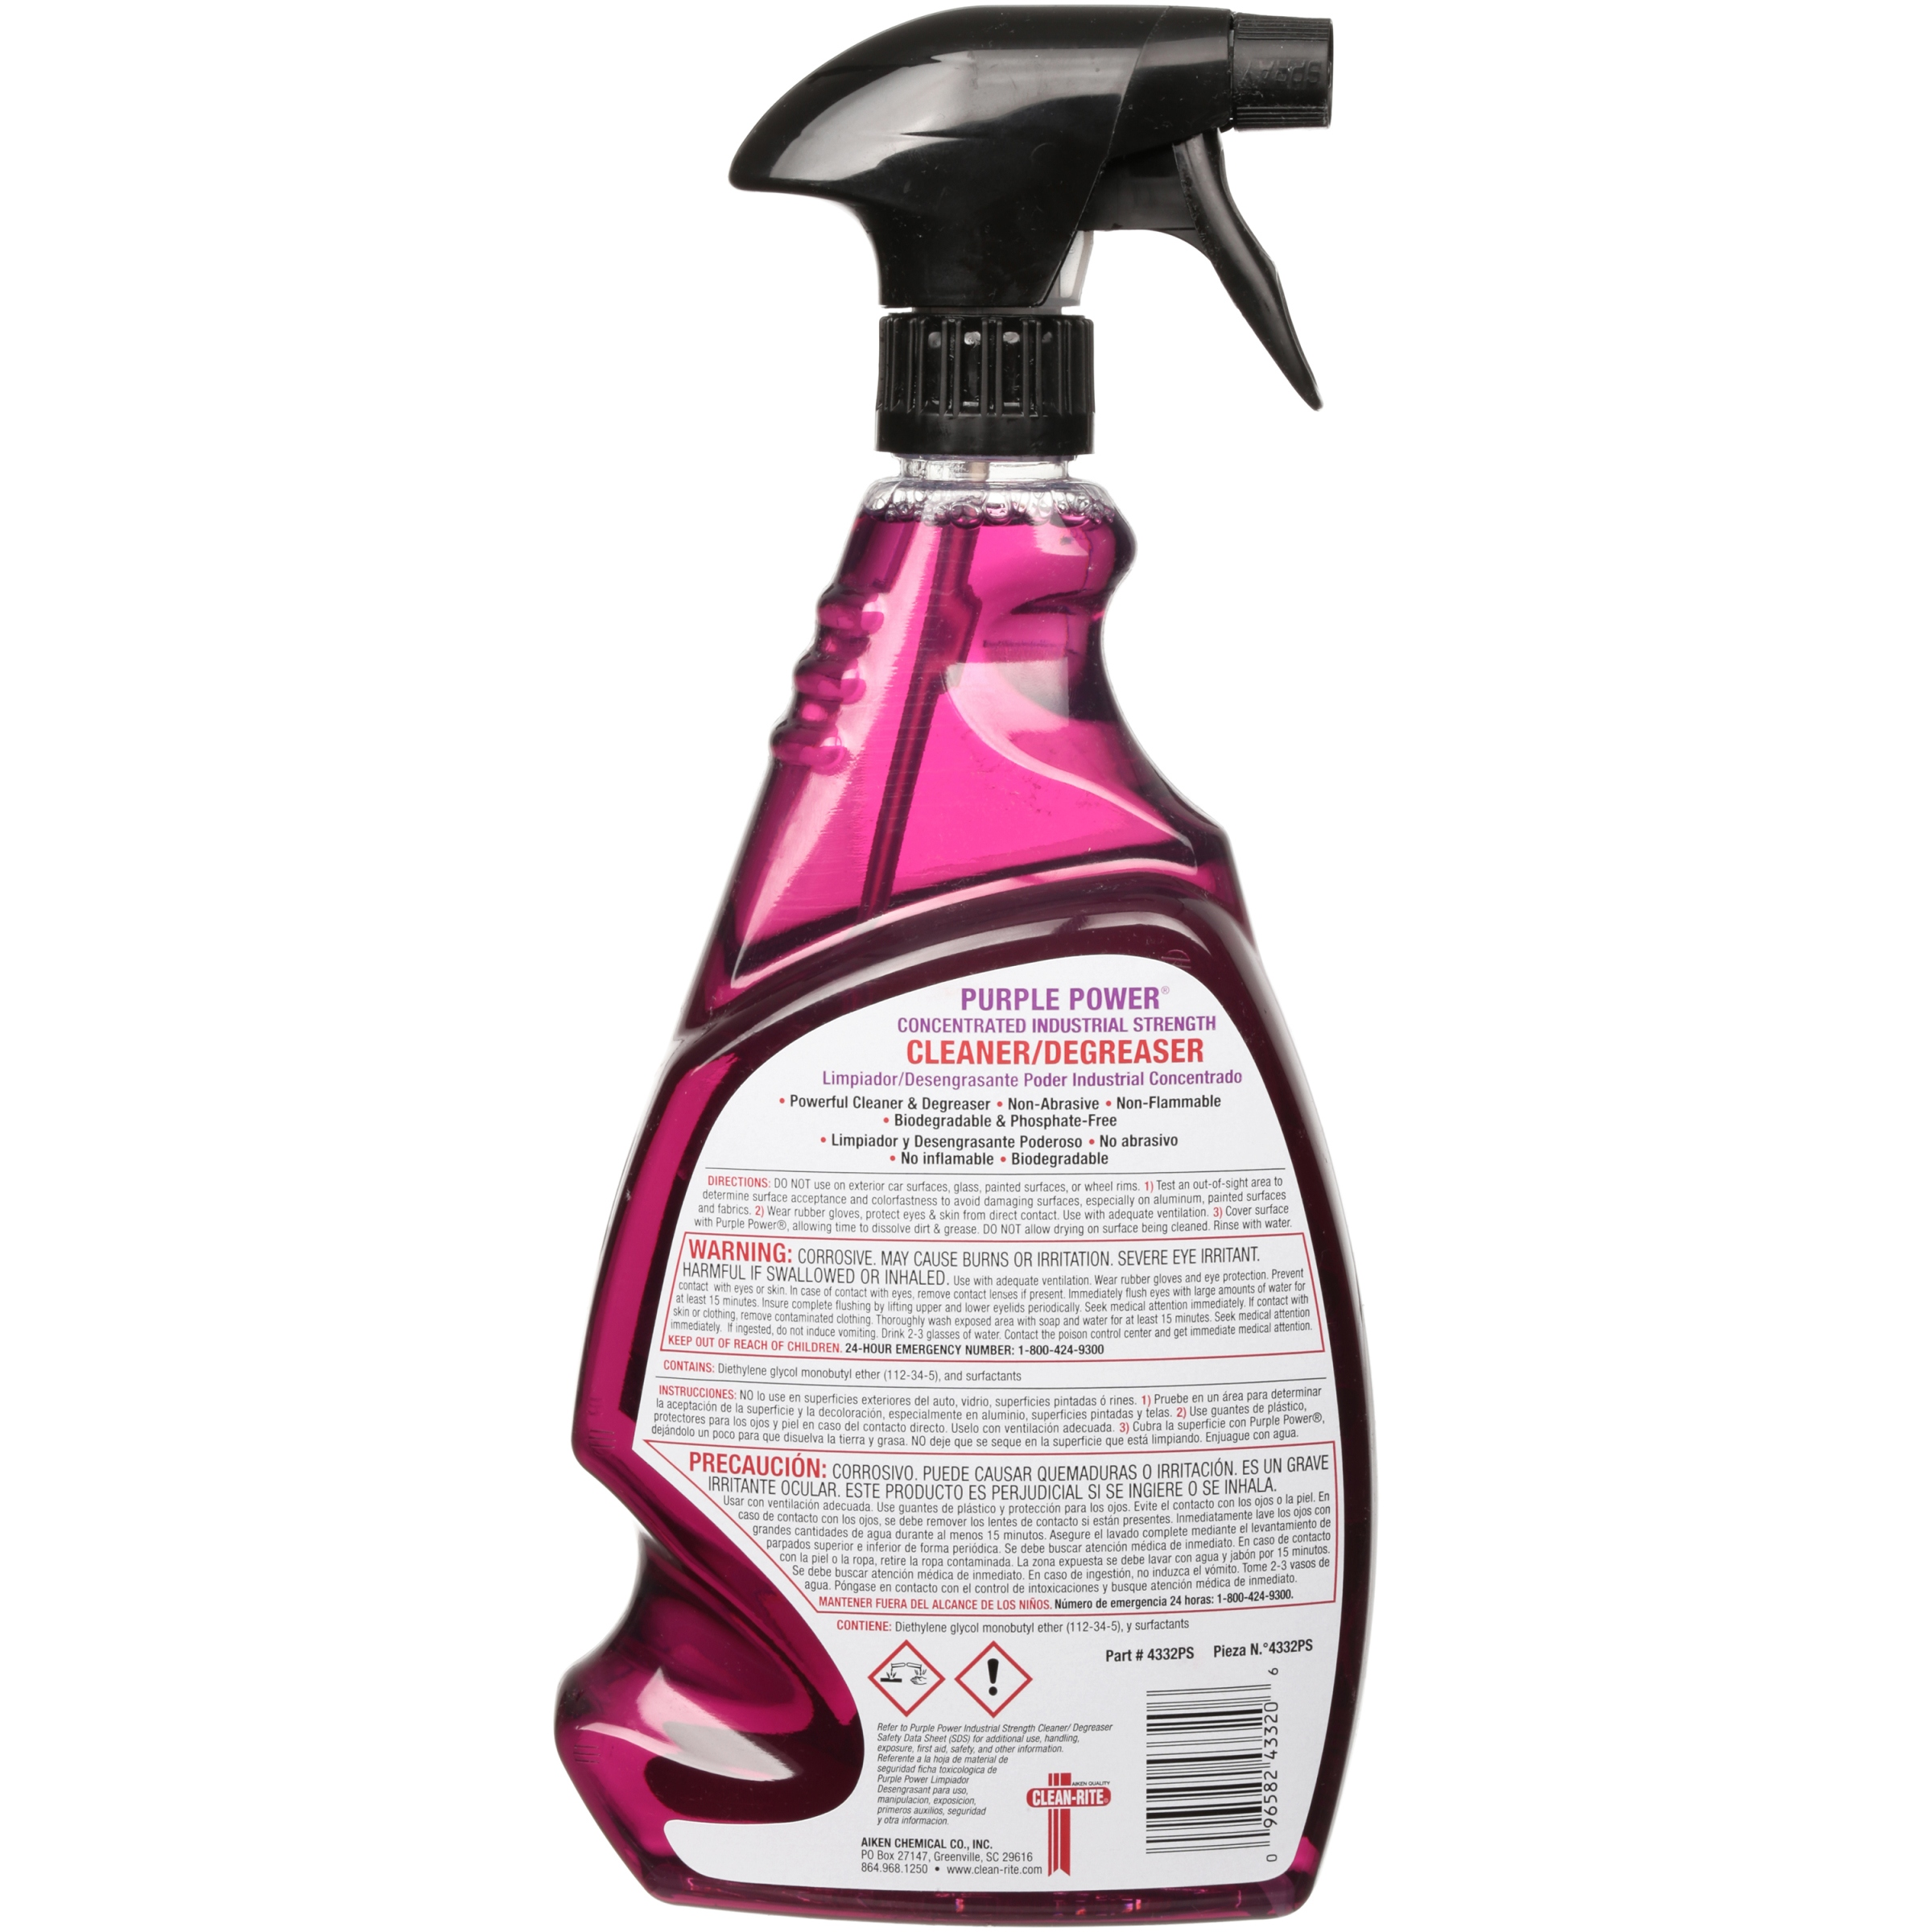 Purple Power Concentrated Industrial Cleaner/Degreaser